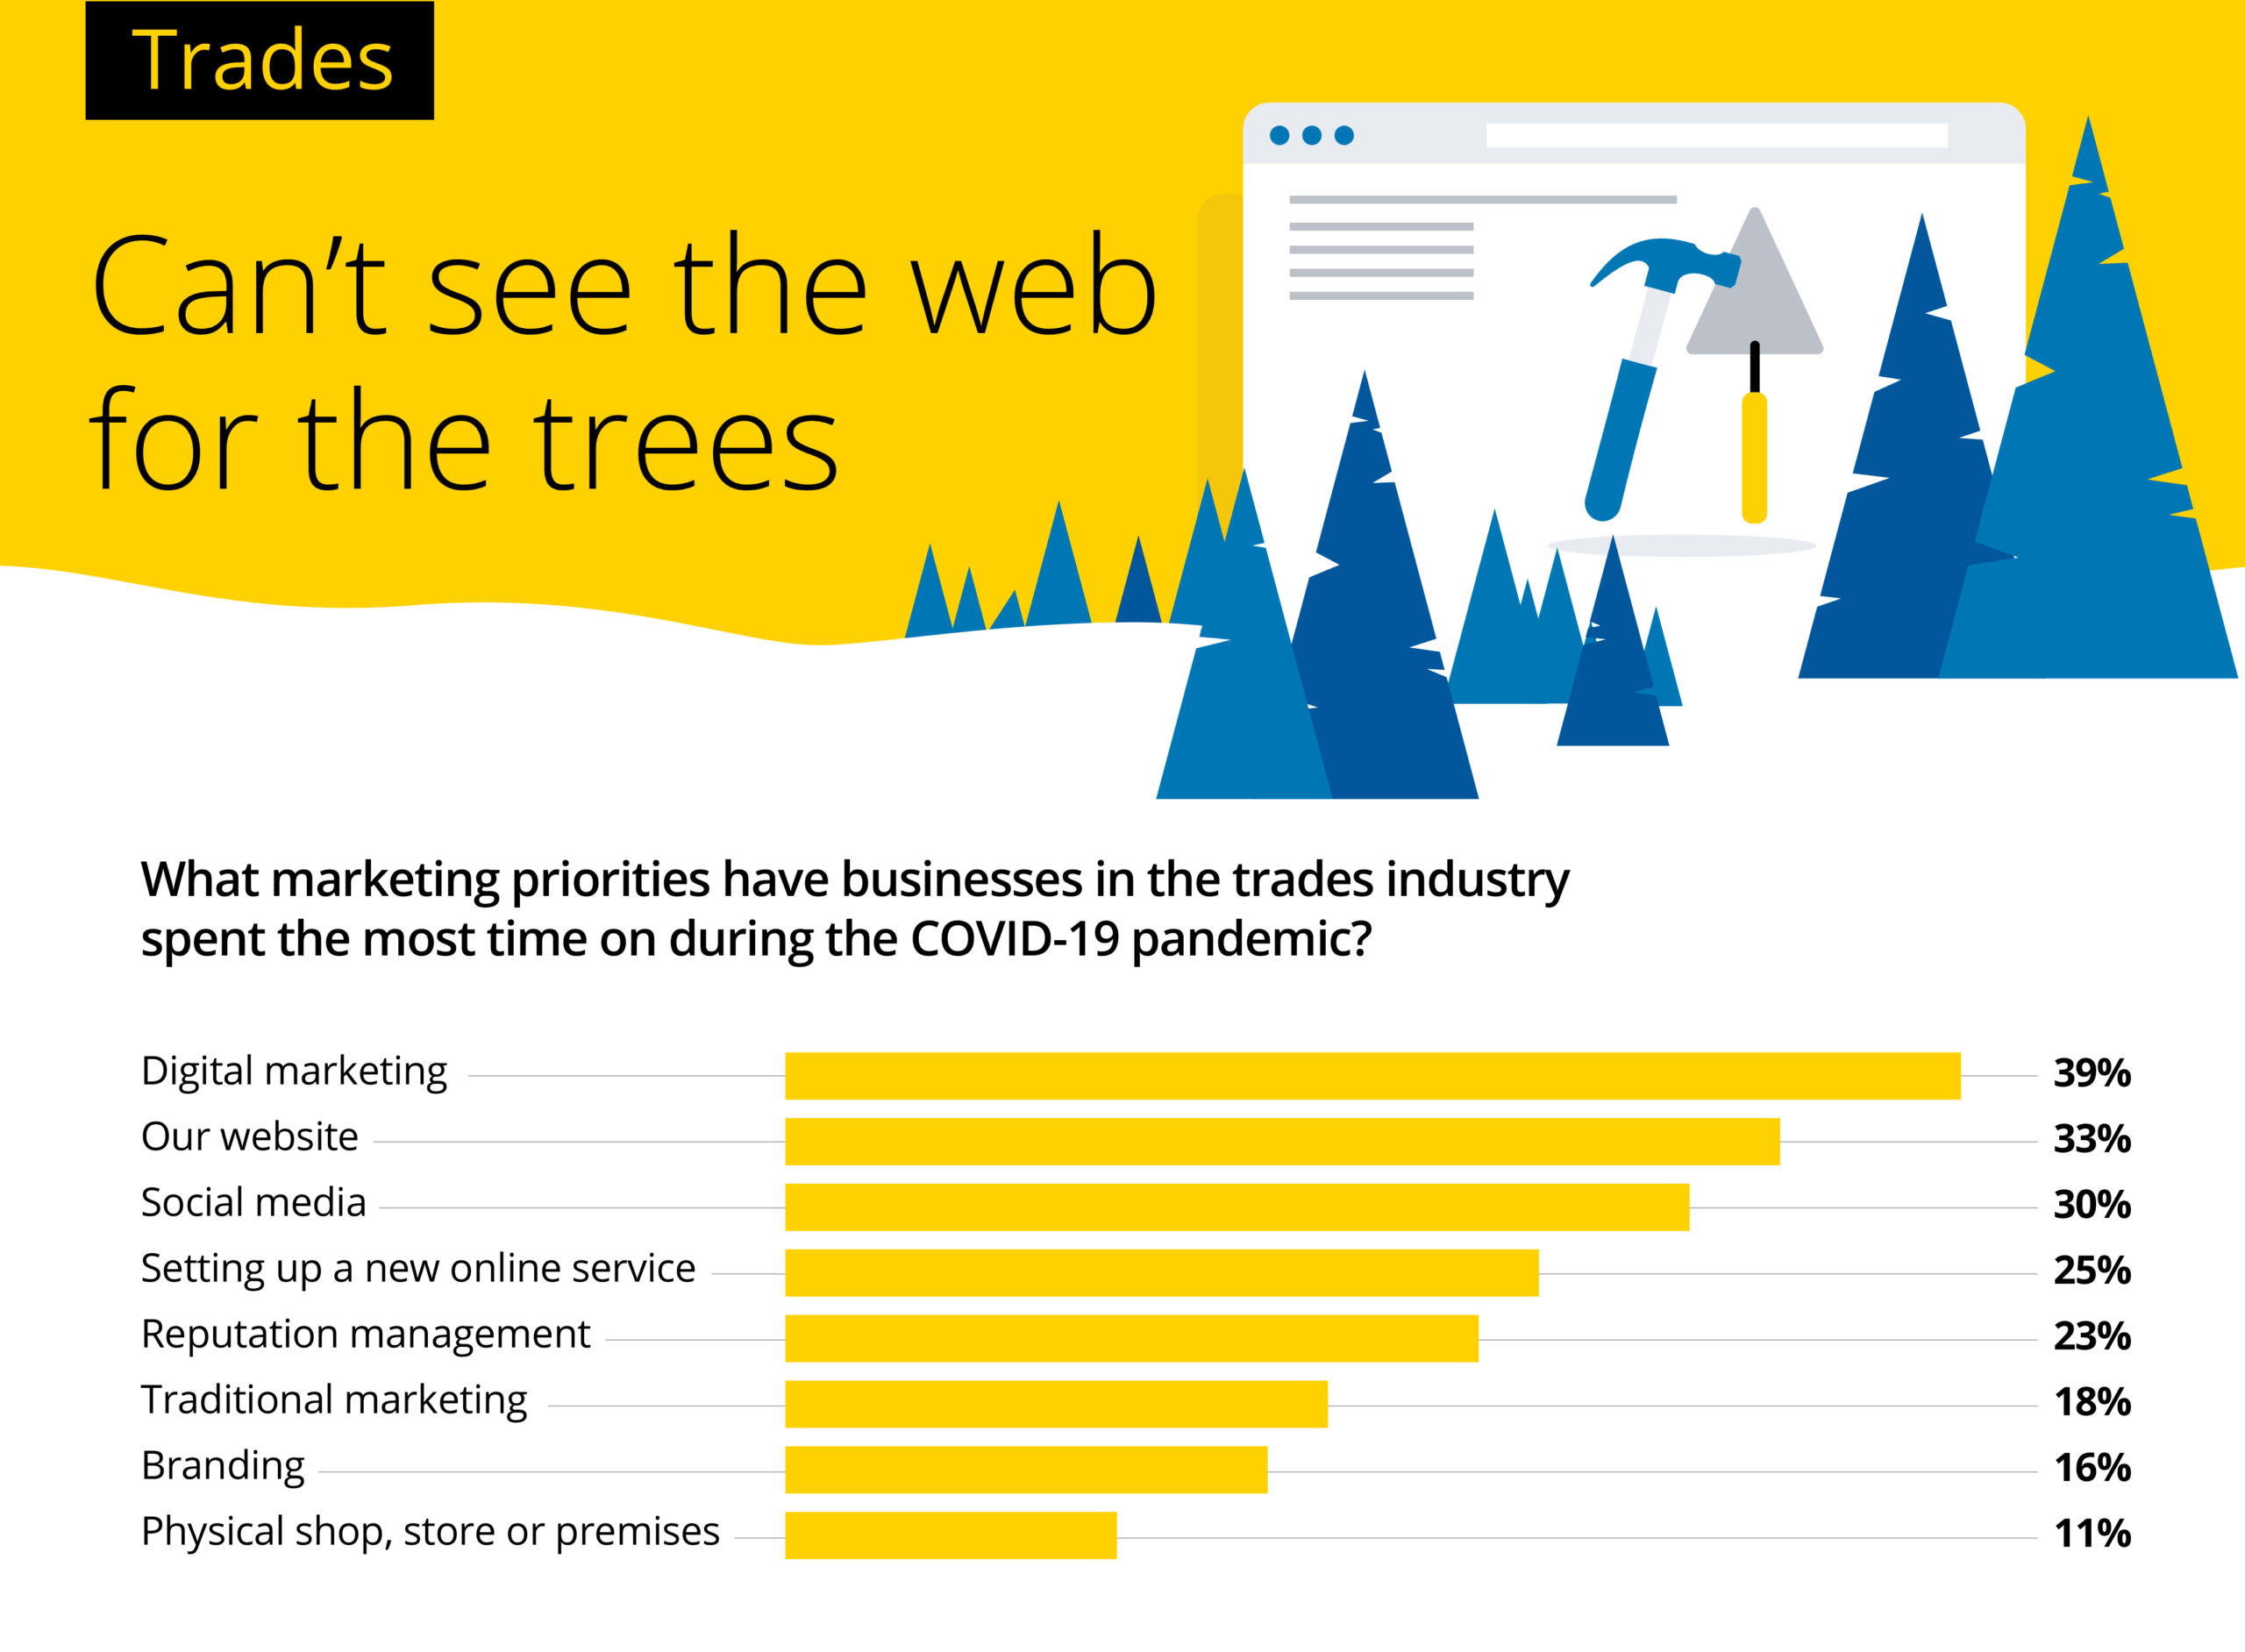 SMEs could be losing up to 54% of online revenue by not updating their website